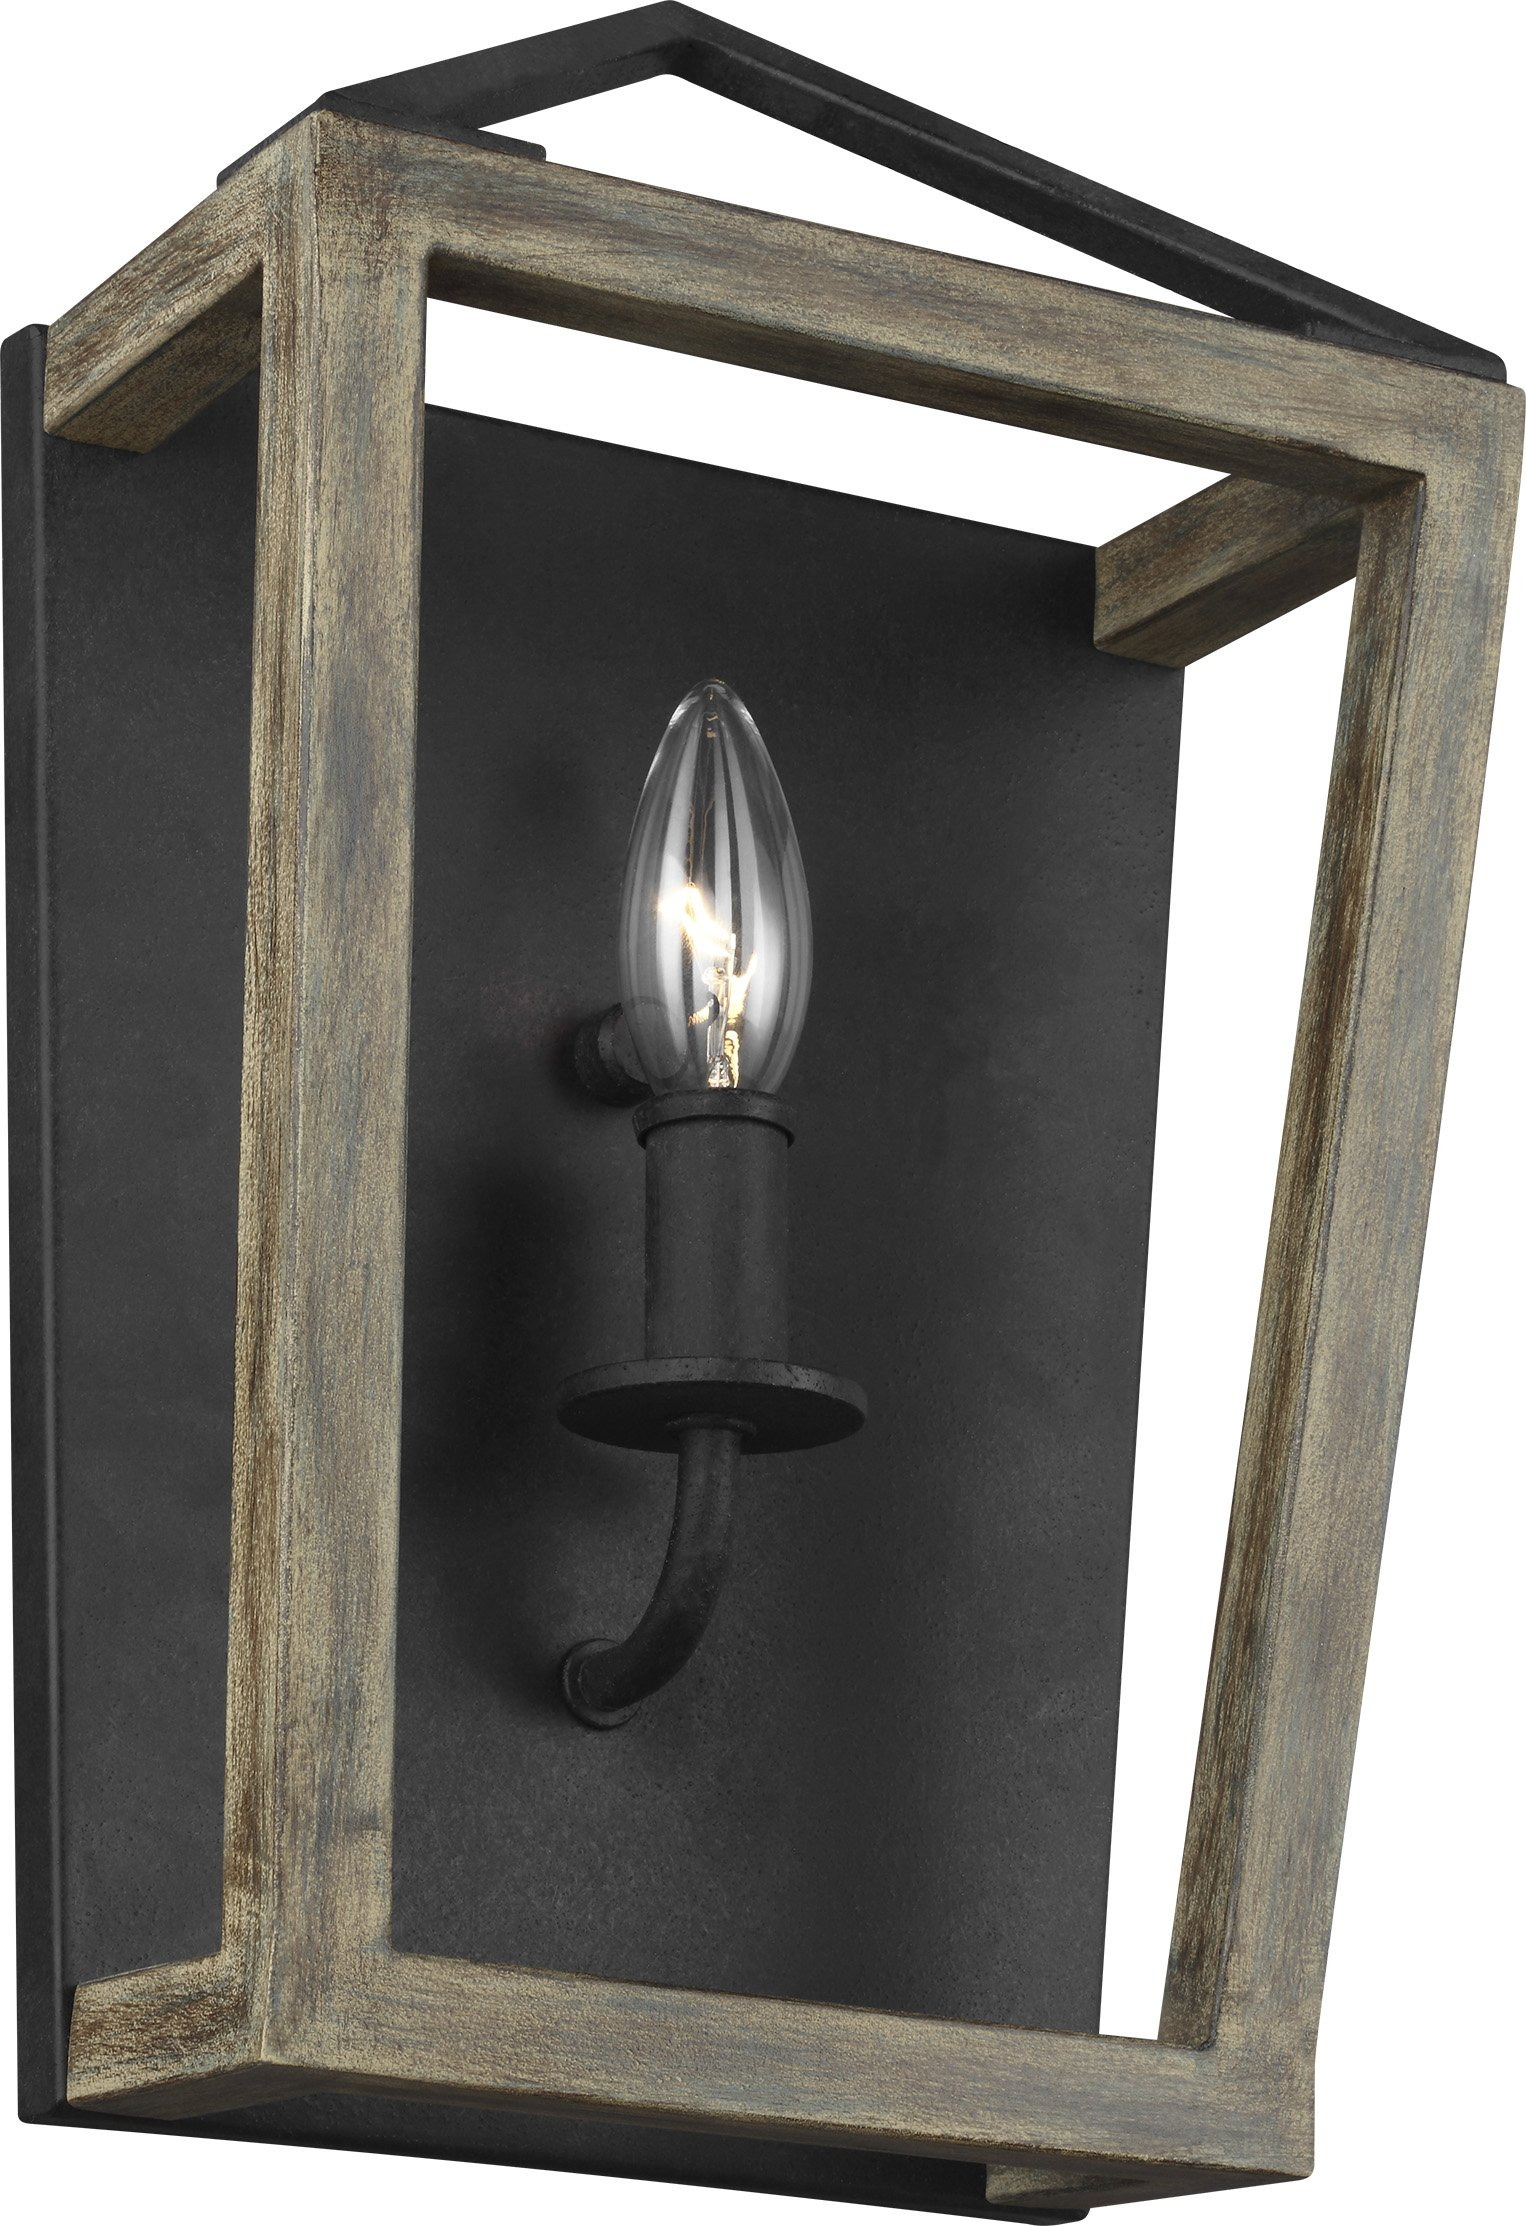 Feiss WB1877WOW/AF Gannet Wall Sconce Candle Lighting, Brown, 1-Light (9''W x 14''H) 60watts